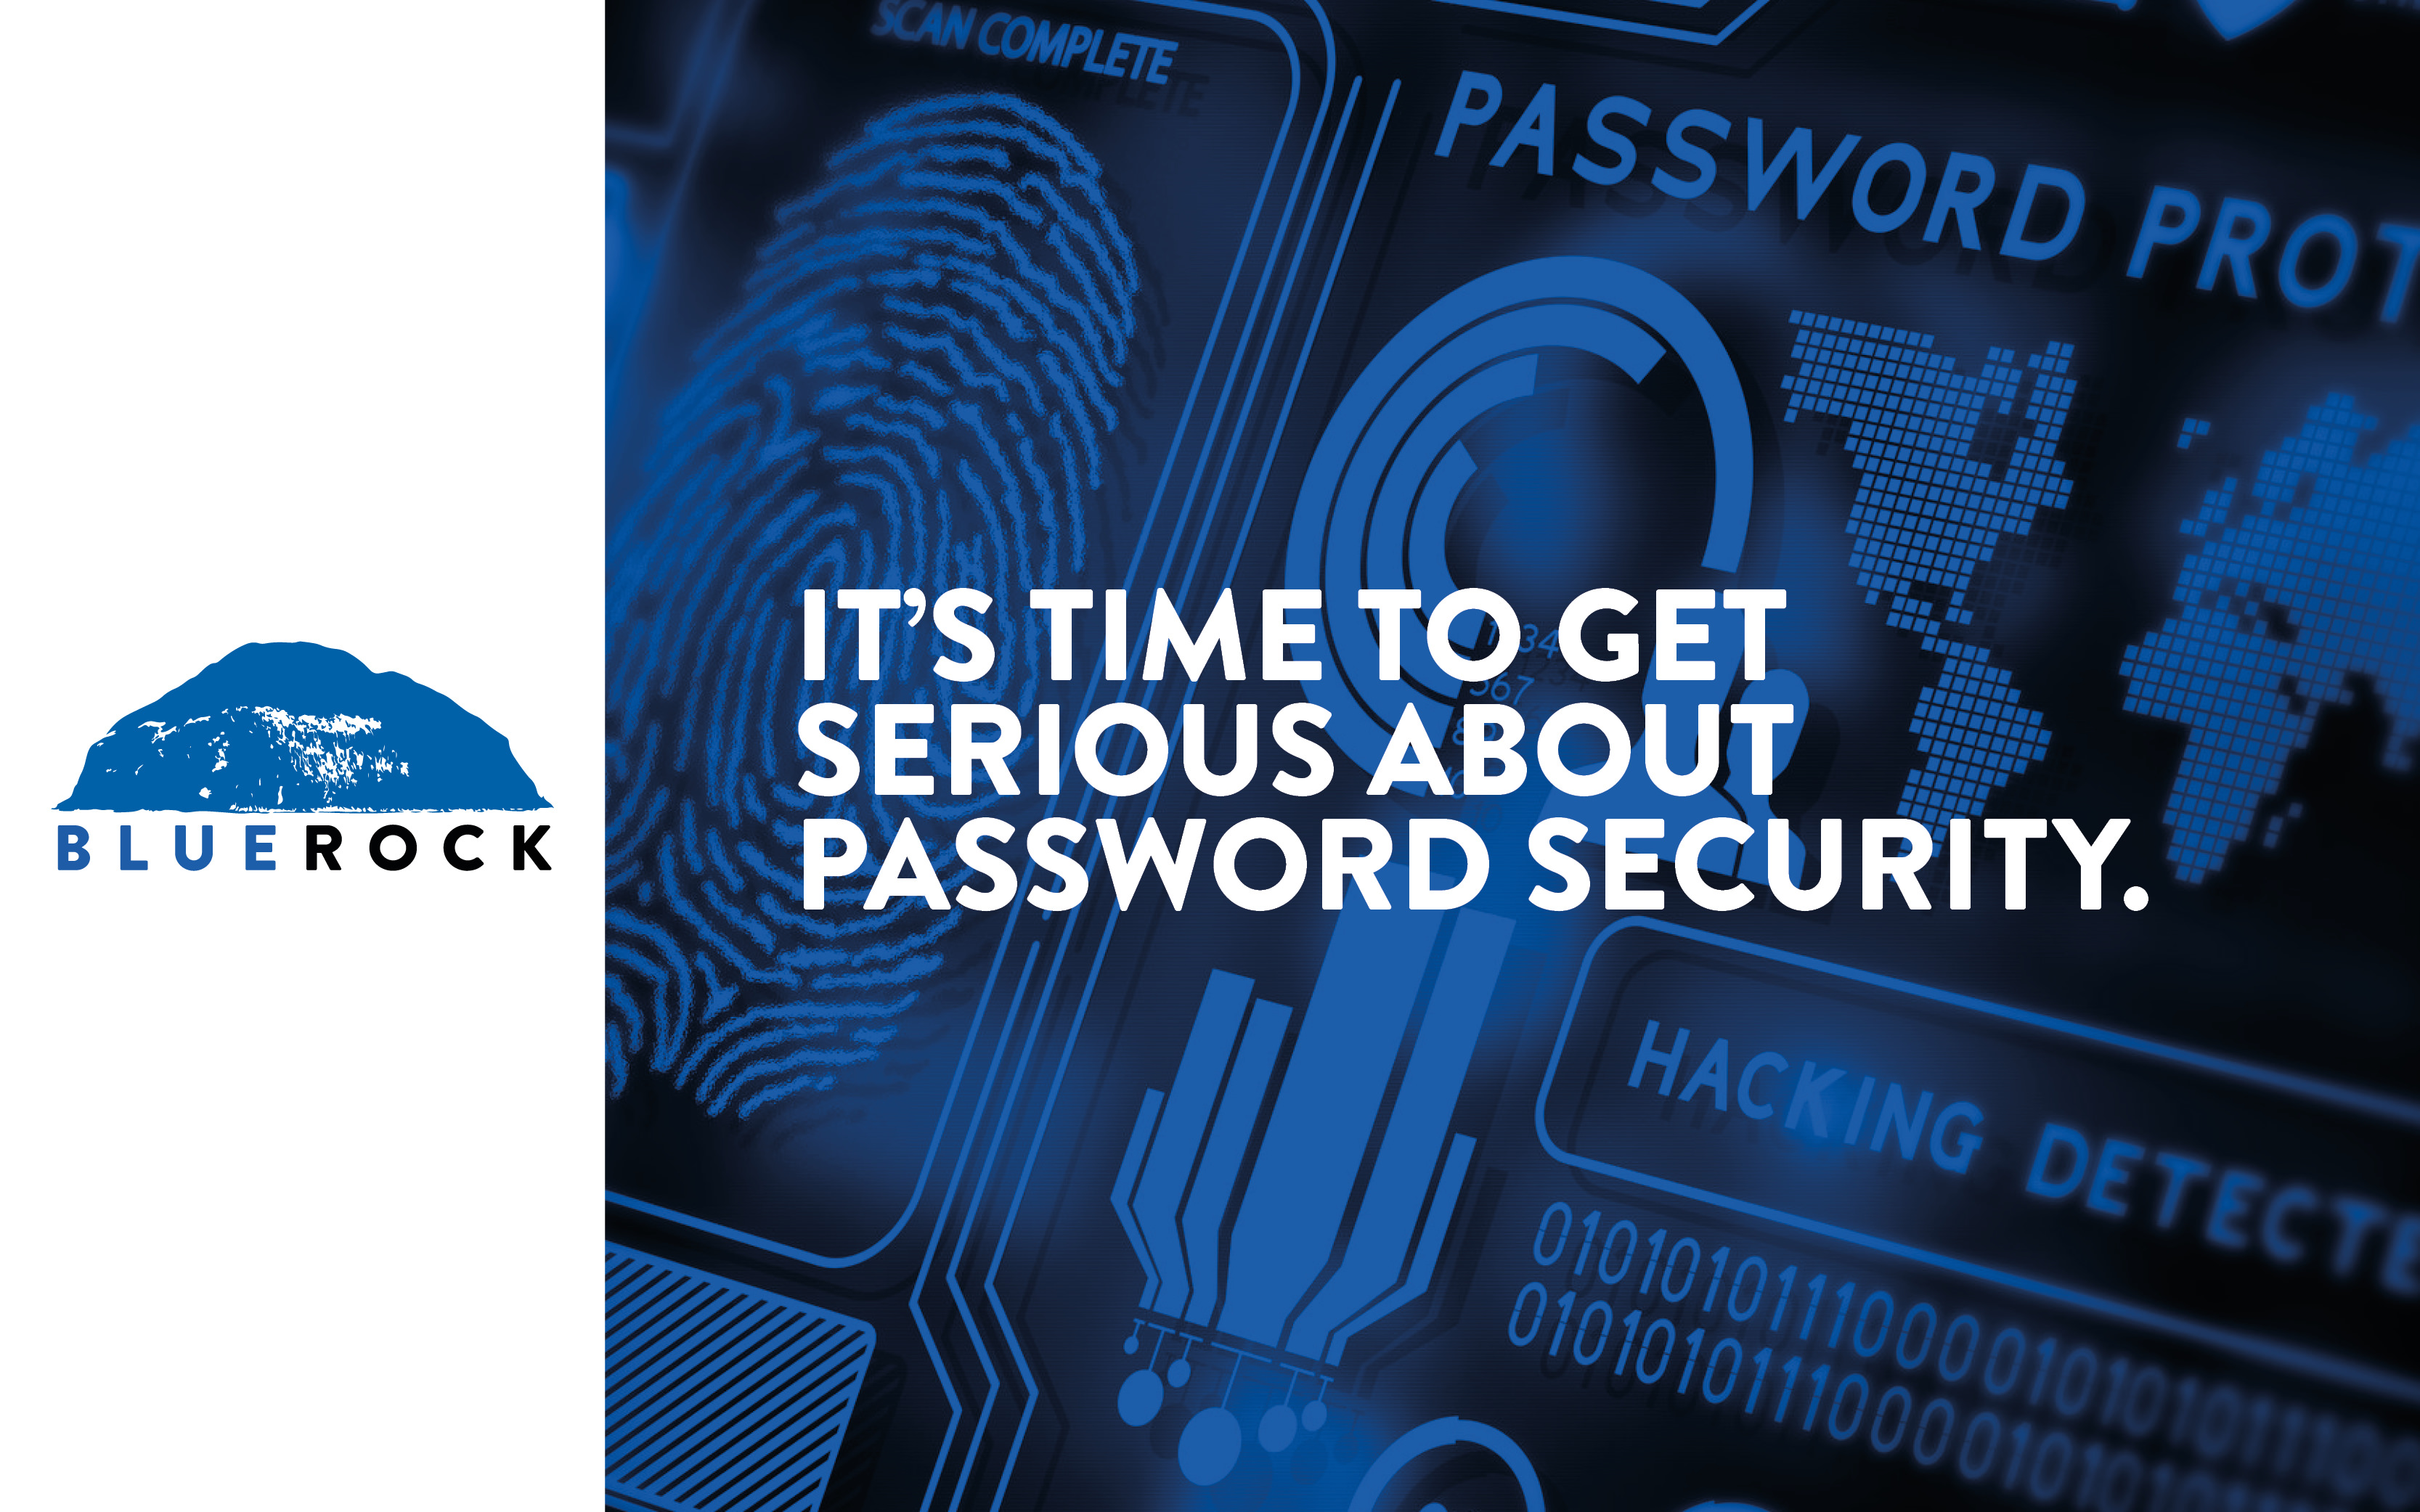 its time to get serious about password security